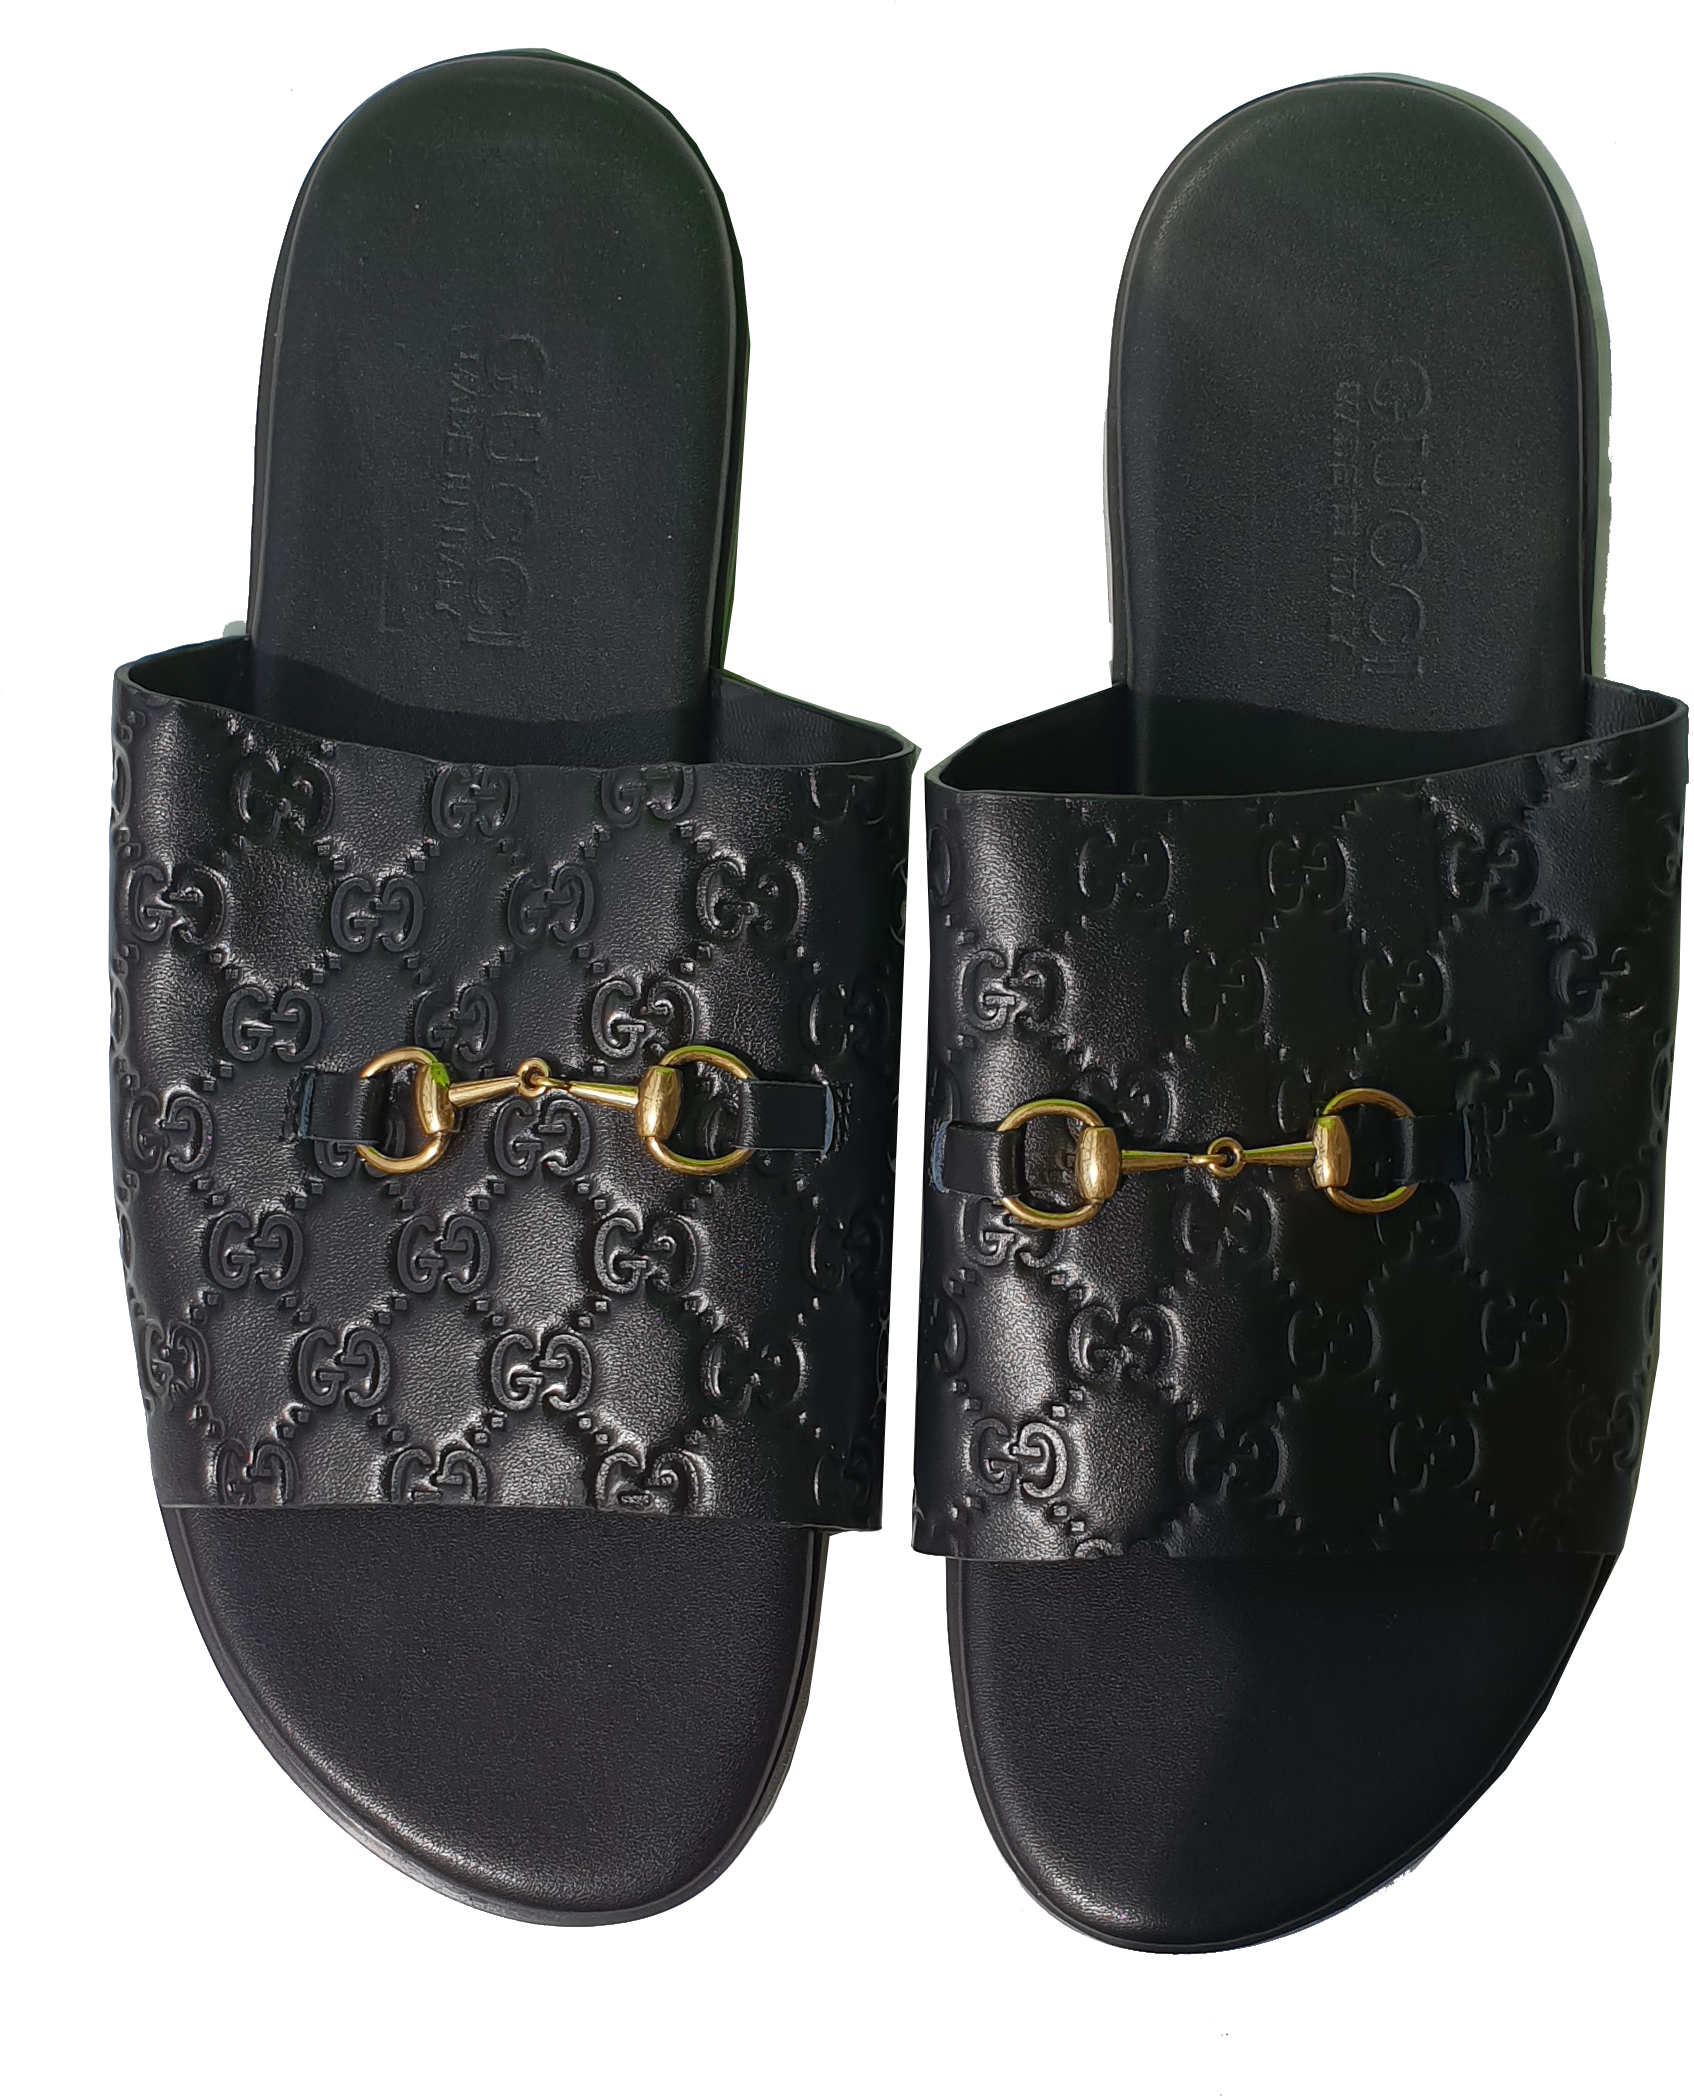 7b1fe62ab97 Download Save 12% Gucci Sandals - Gucci Sandals - Full Size PNG ...